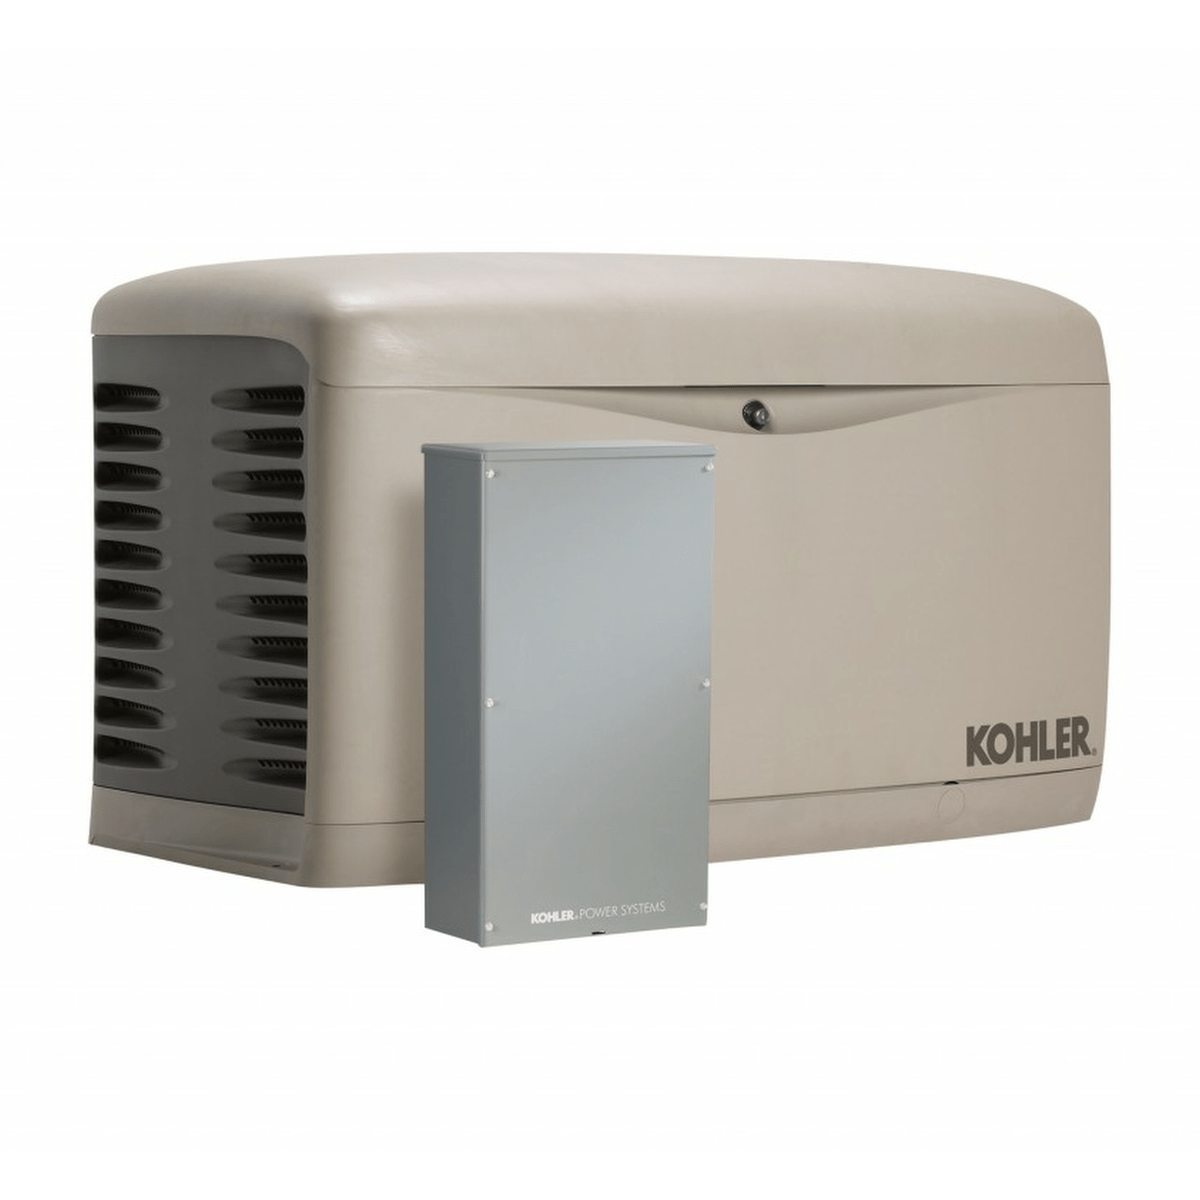 kohler 20resal 100lc16 20kw generator with 100a 16 circuit transfer switch [ 1200 x 1200 Pixel ]